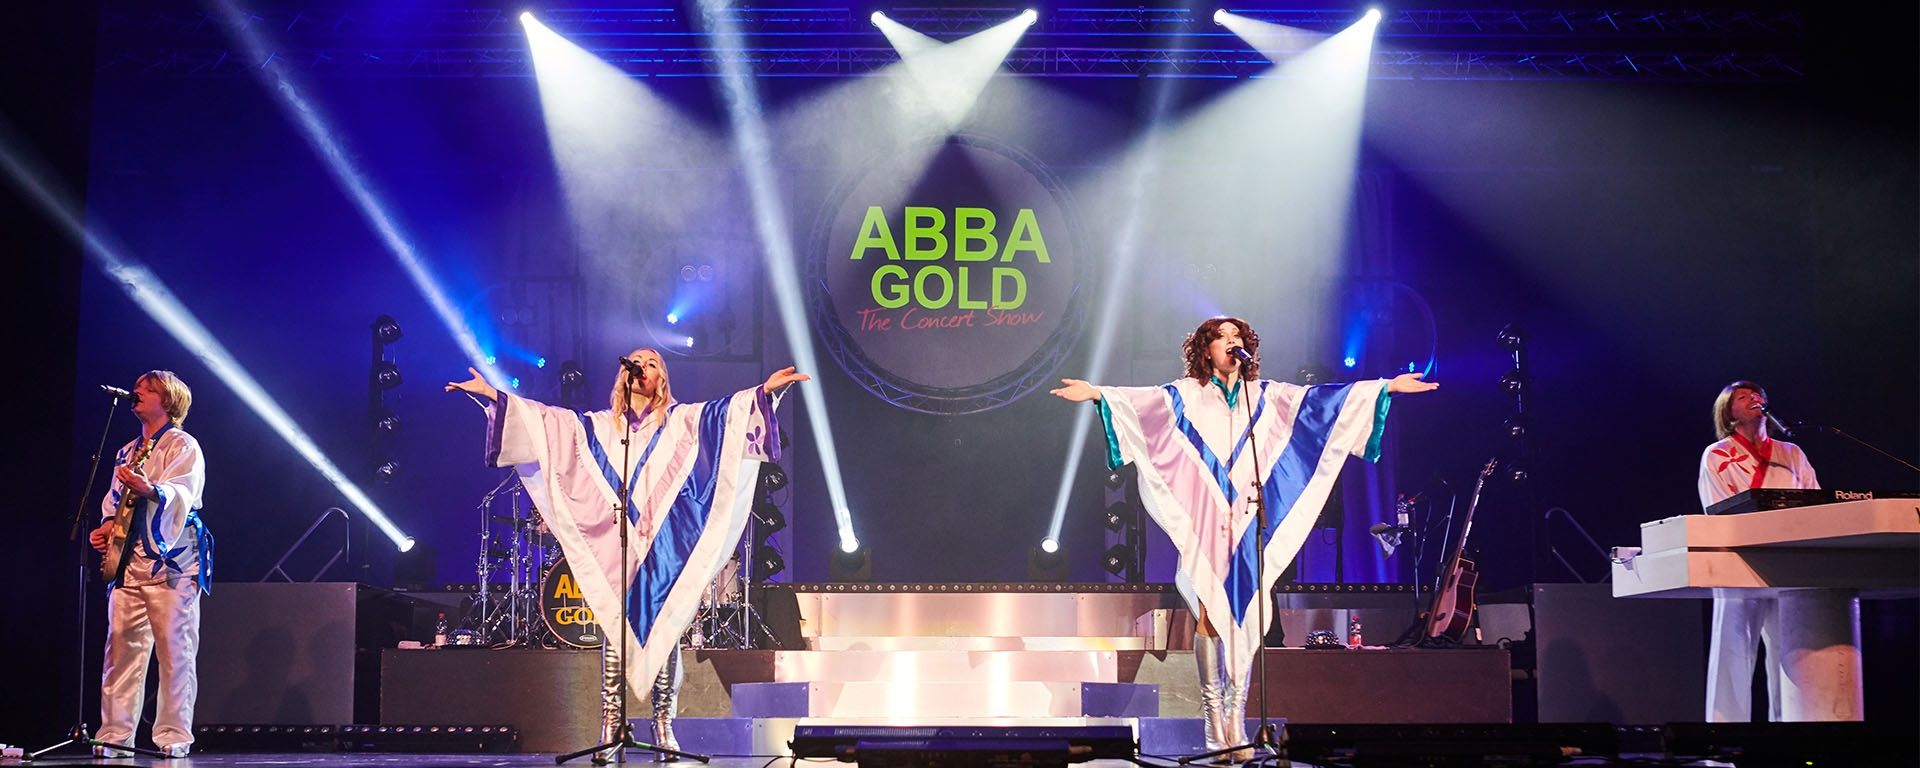 ABBA GOLD The Concert Show   »Knowing You – Knowing Me«